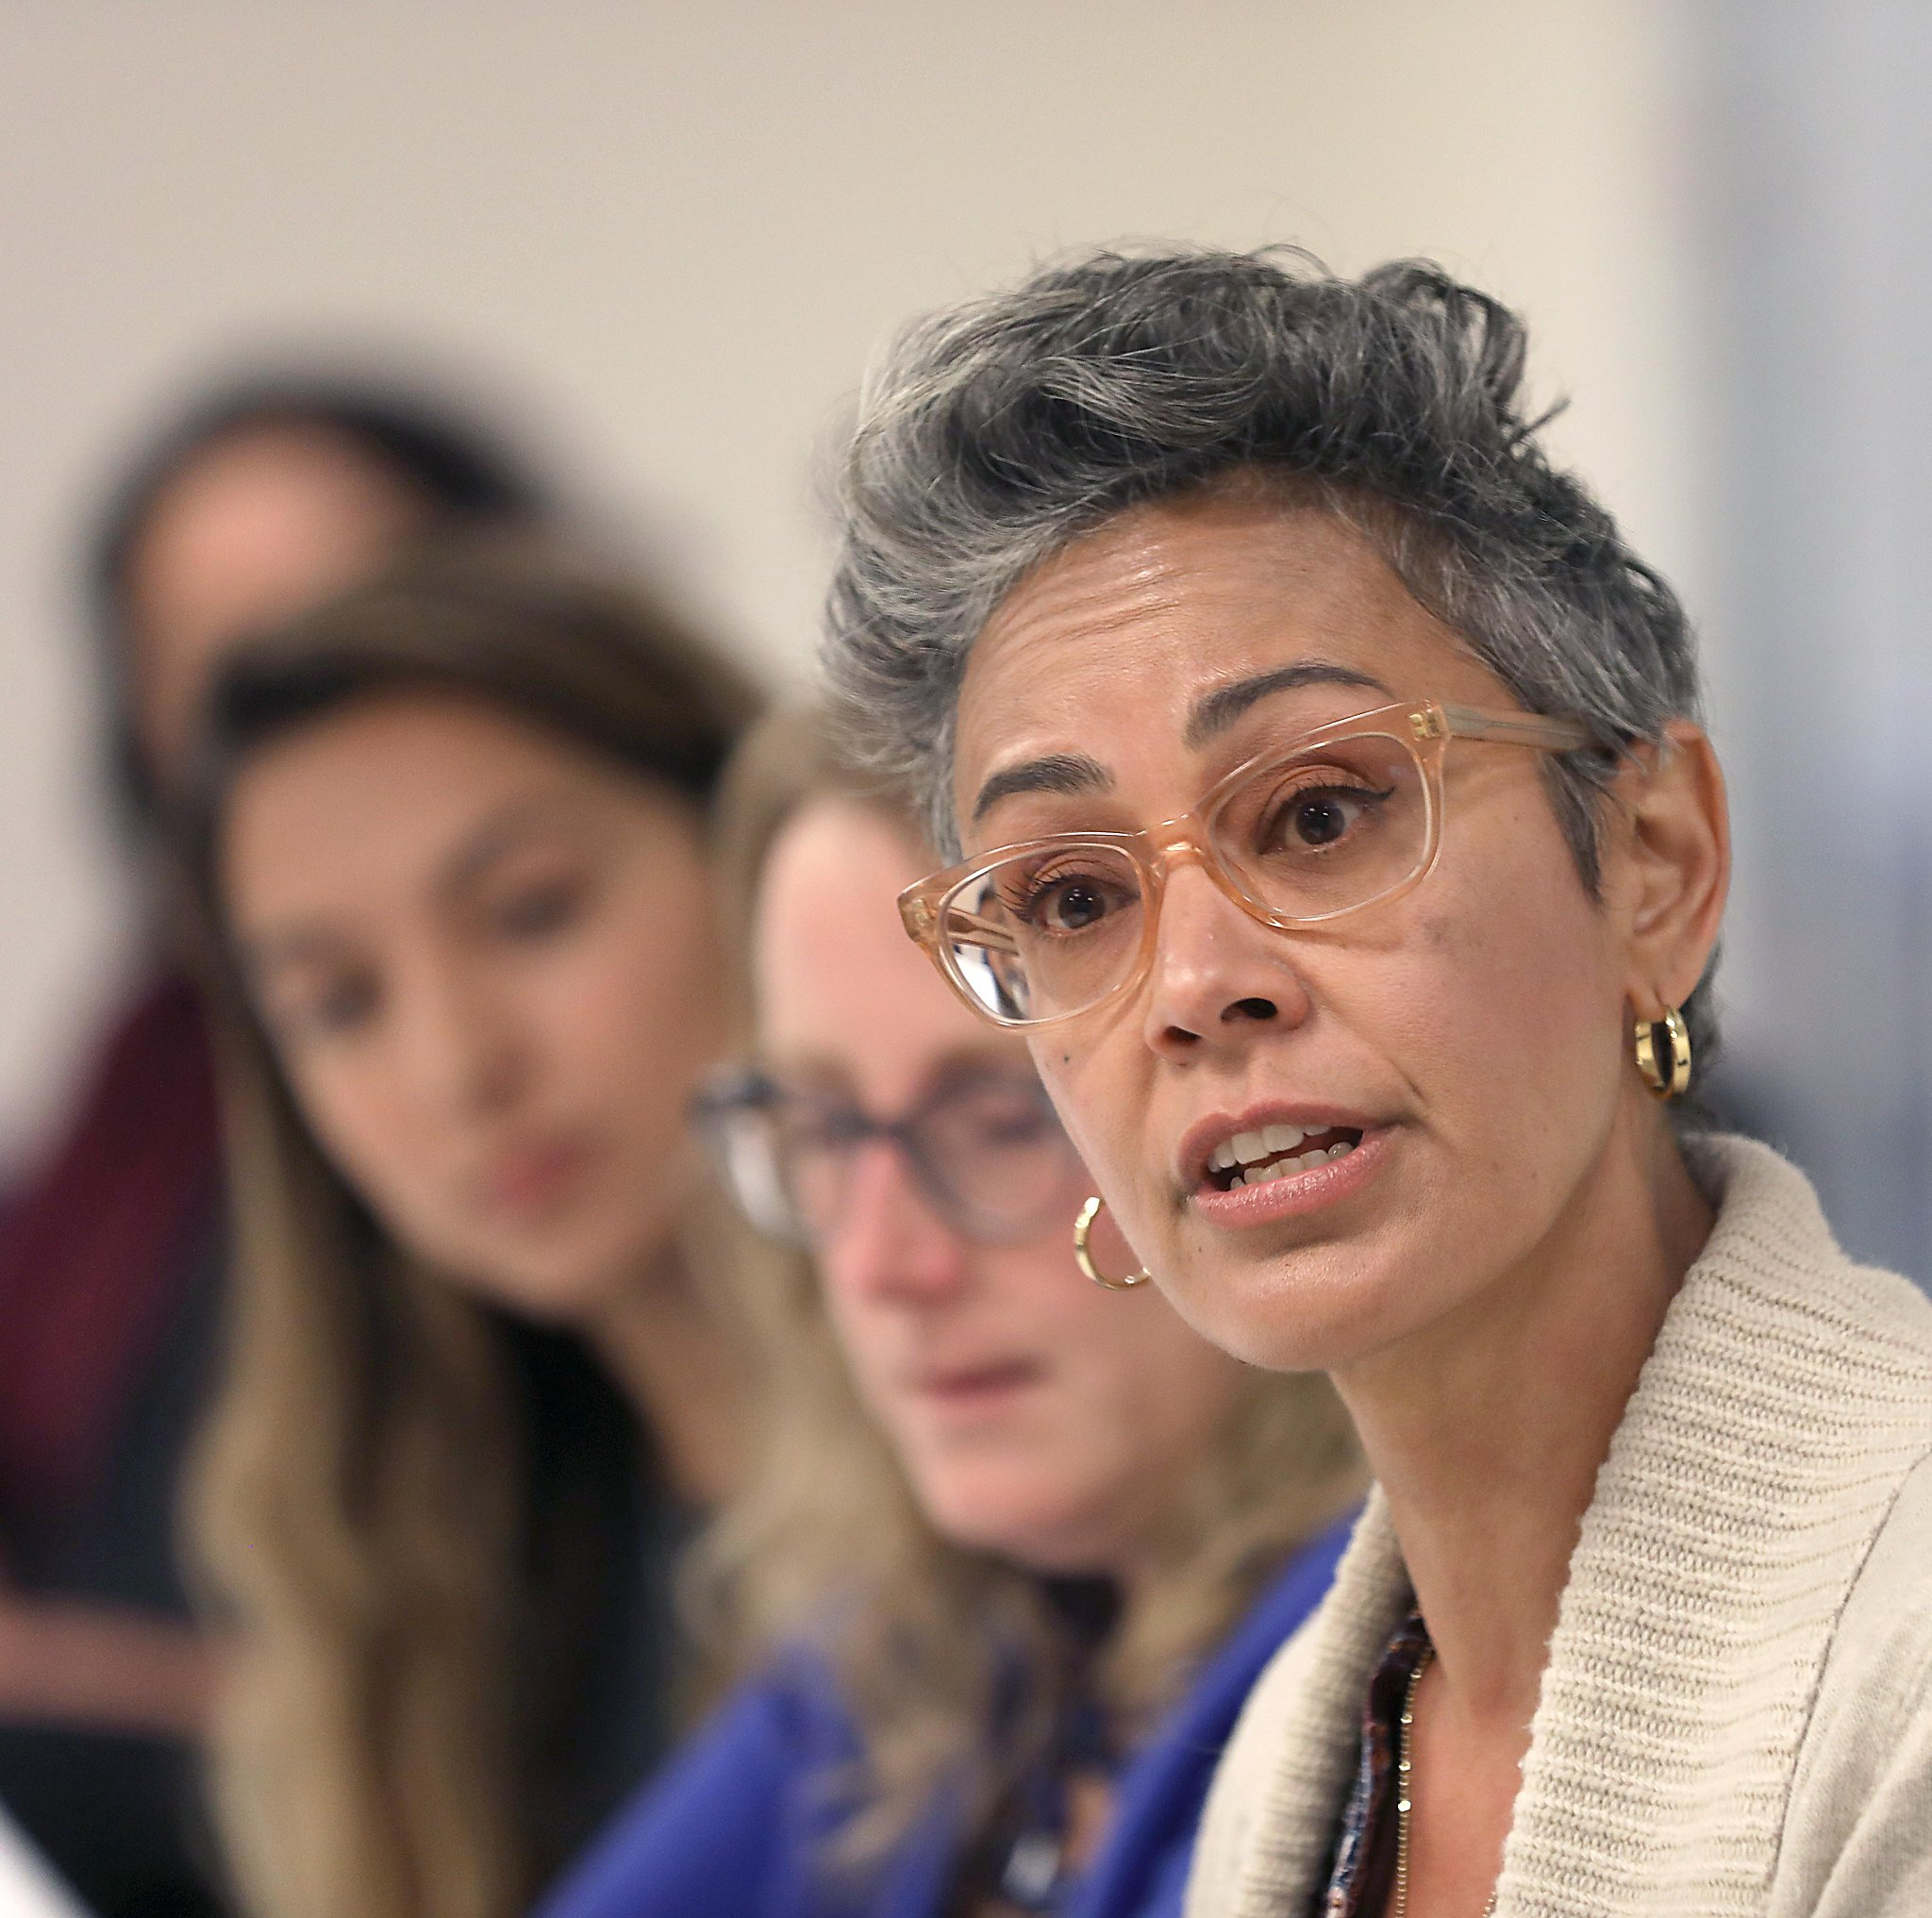 www.sfchronicle.com: San Francisco school board member criticized for racist tweets in 2016 aimed at Asian Americans